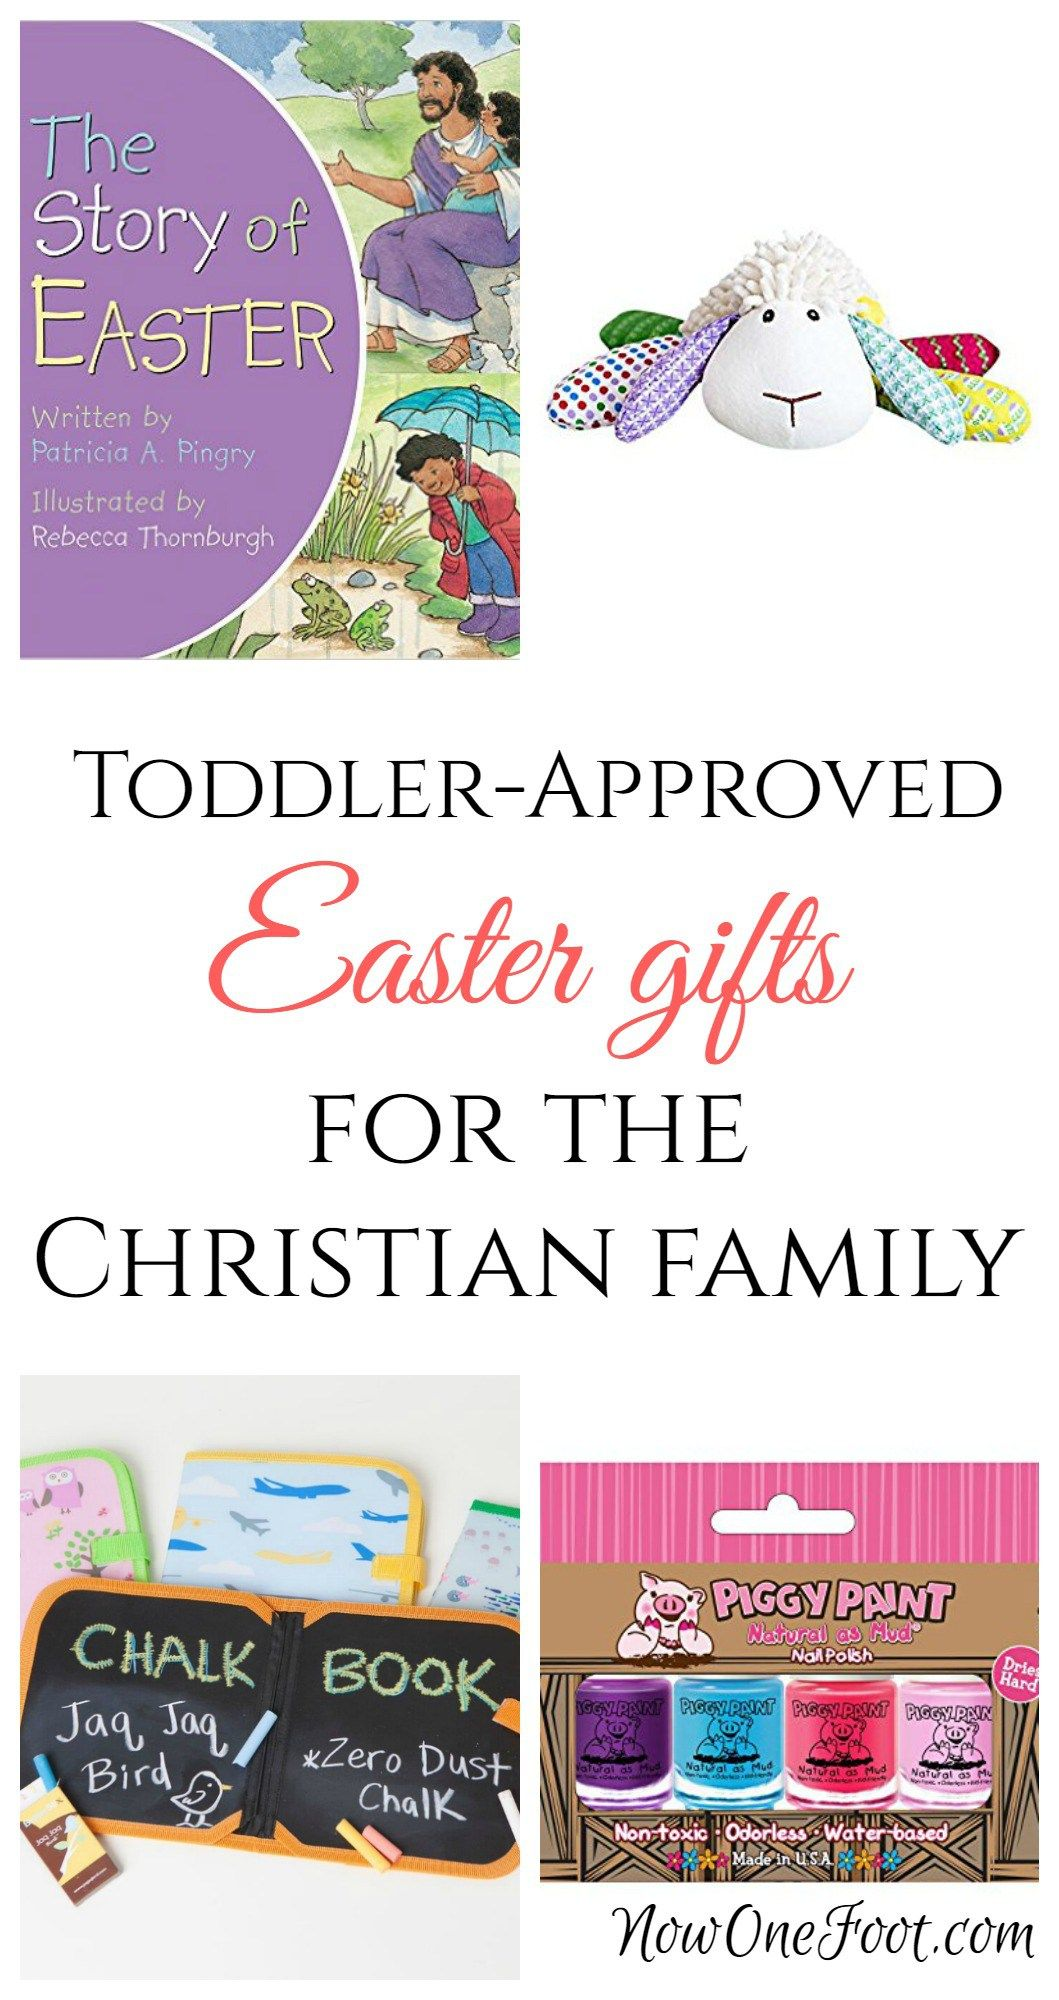 Toddler approved easter basket gifts basket ideas easter baskets but if you are wanting to keep easter christ centered there are so many great options out there even easter basket ideas for a 2 year old negle Choice Image